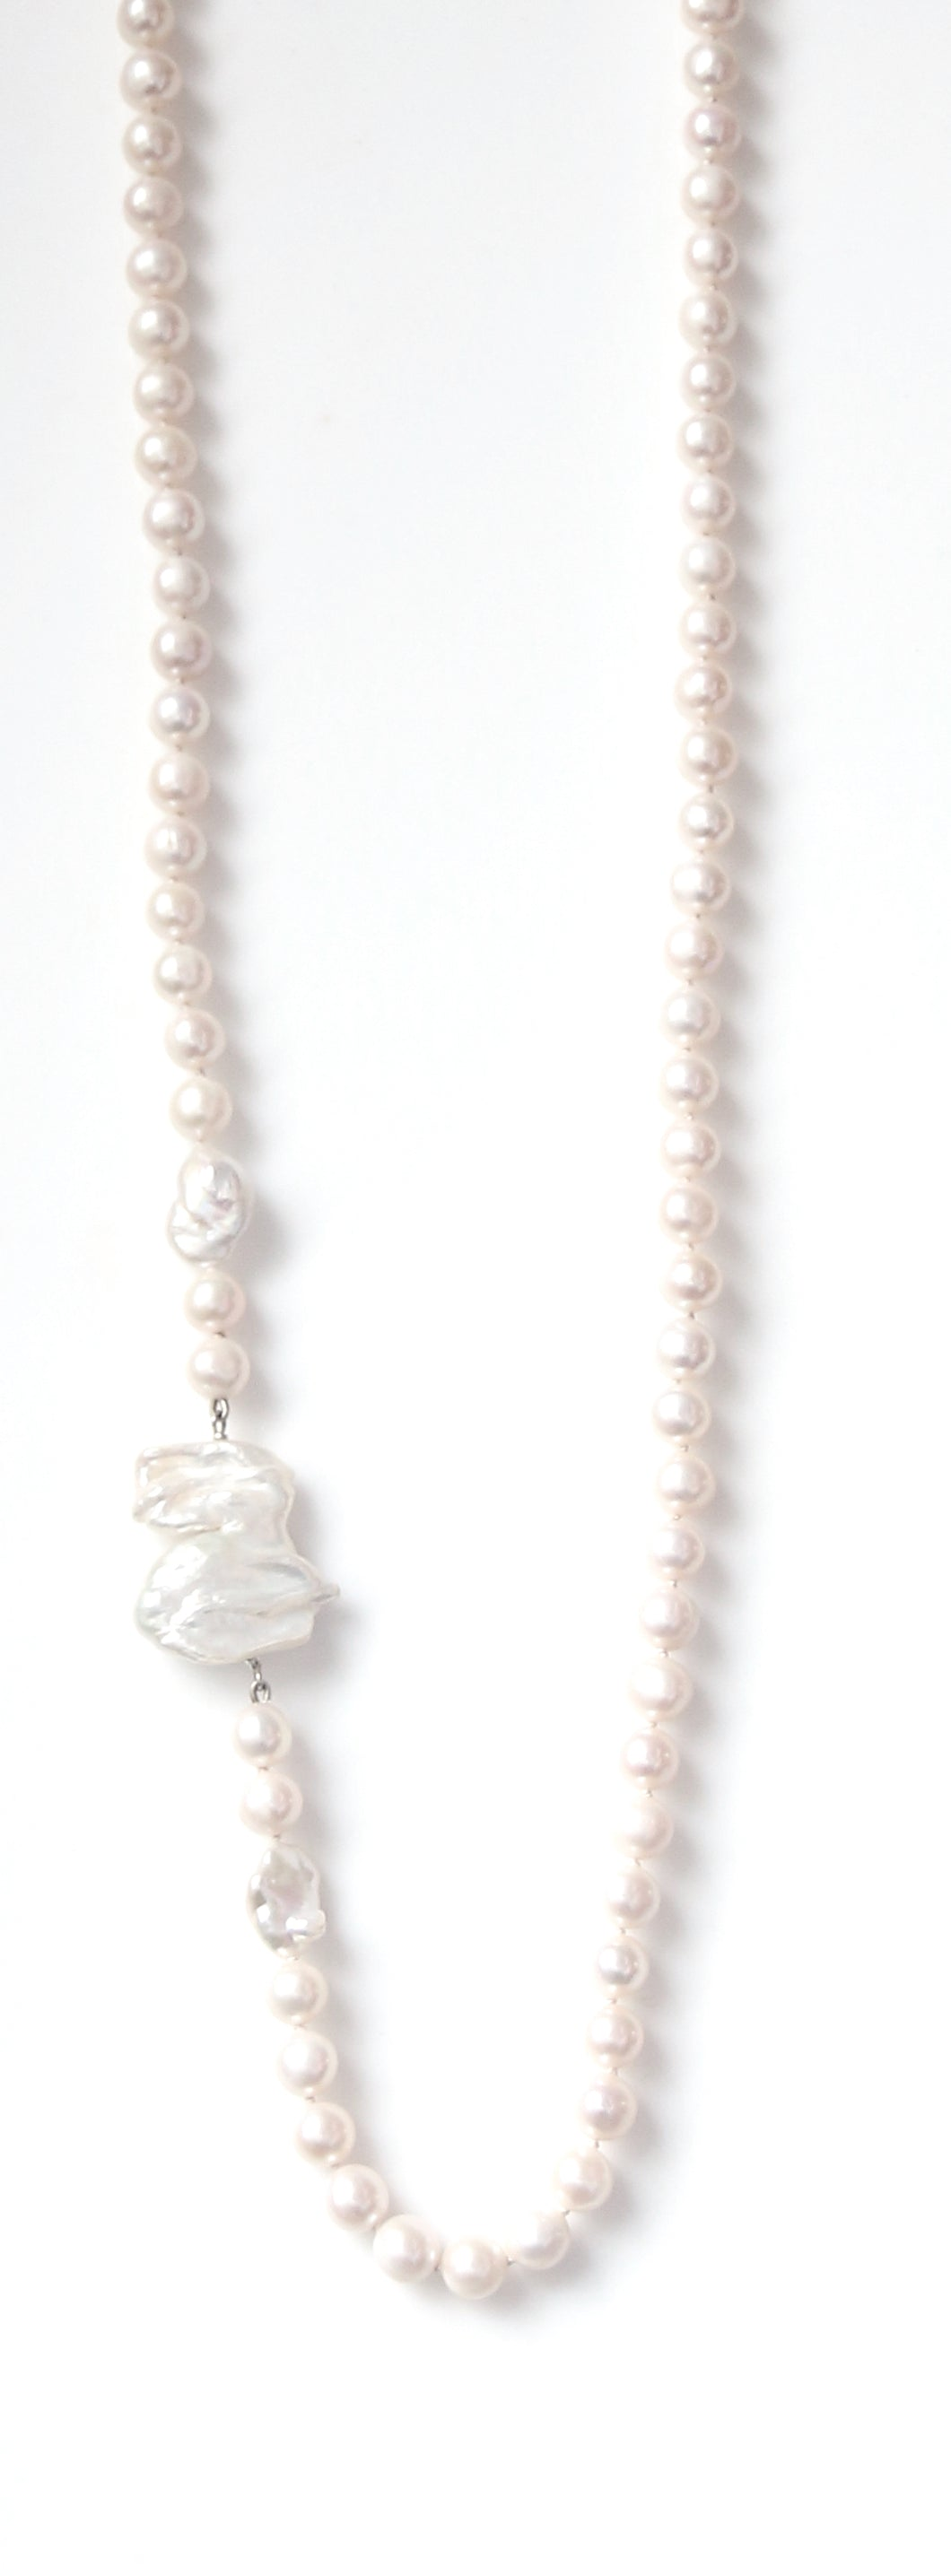 Australian Handmade White Necklace with Pearls and Baroque Pearls